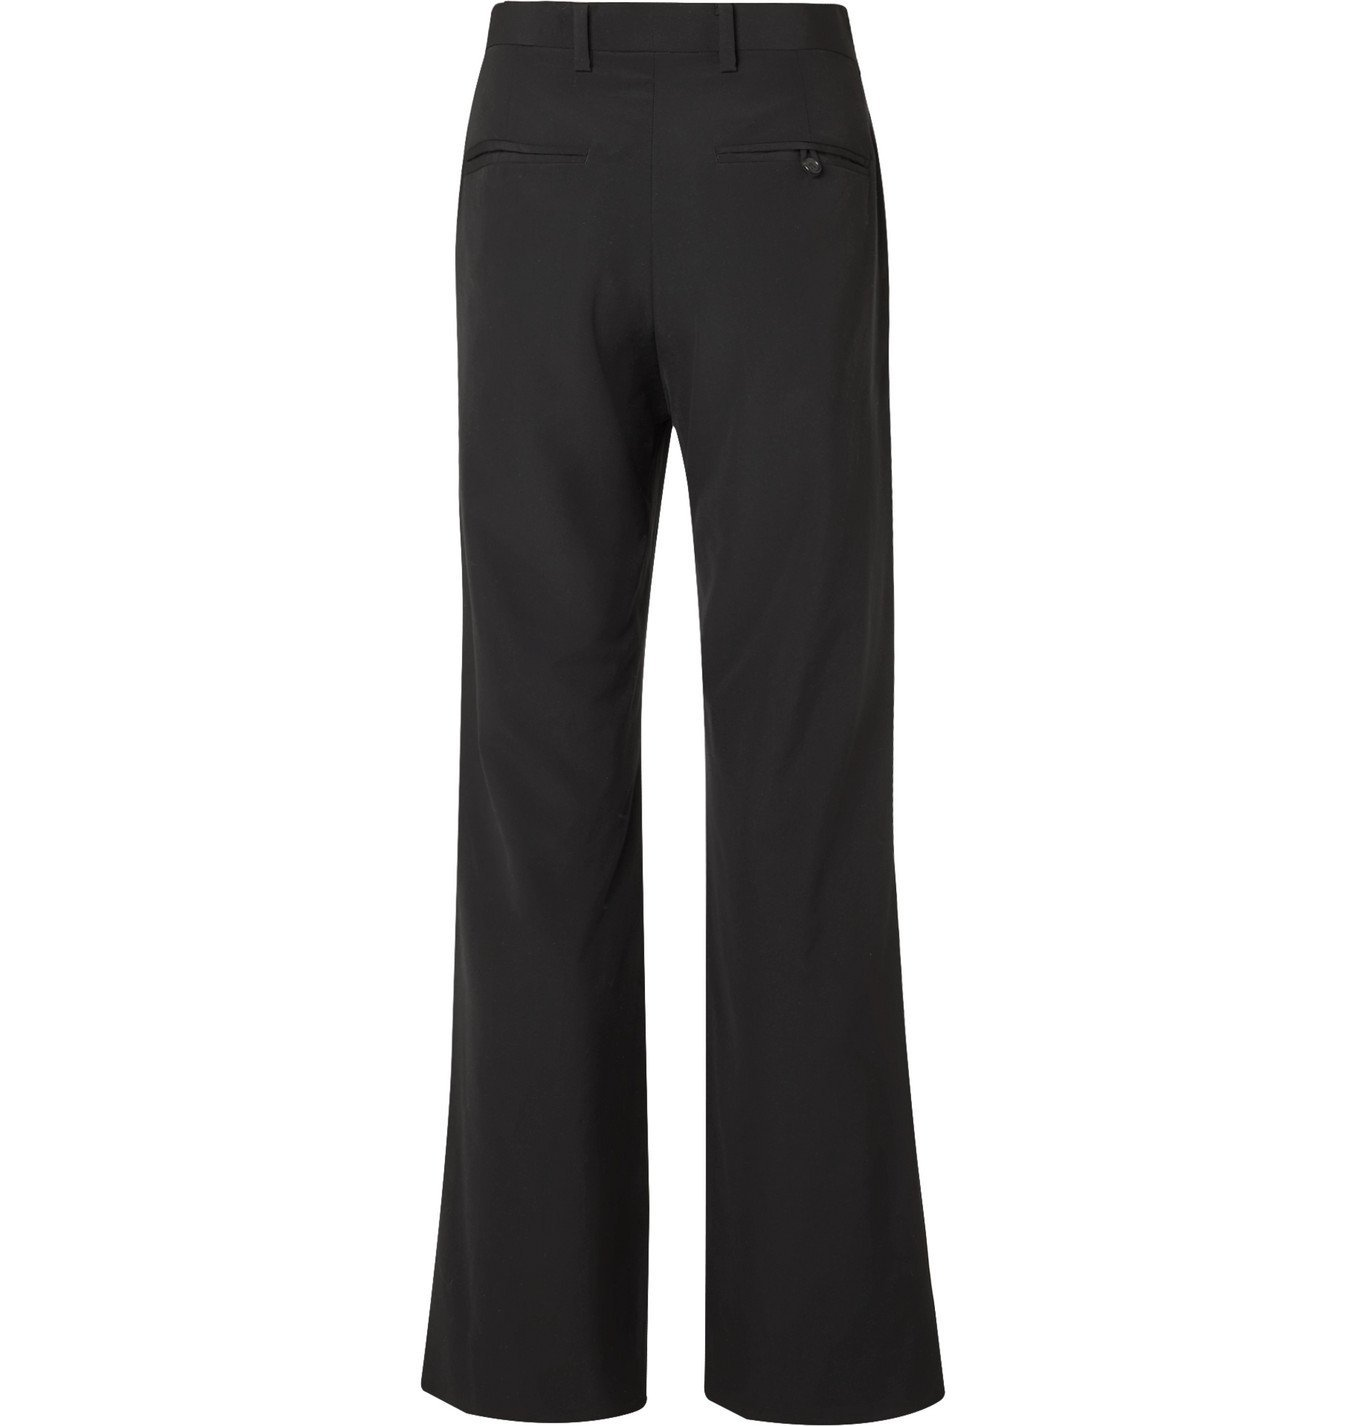 Undercover - Patchwork Wool and Silk-Blend Trousers - Black